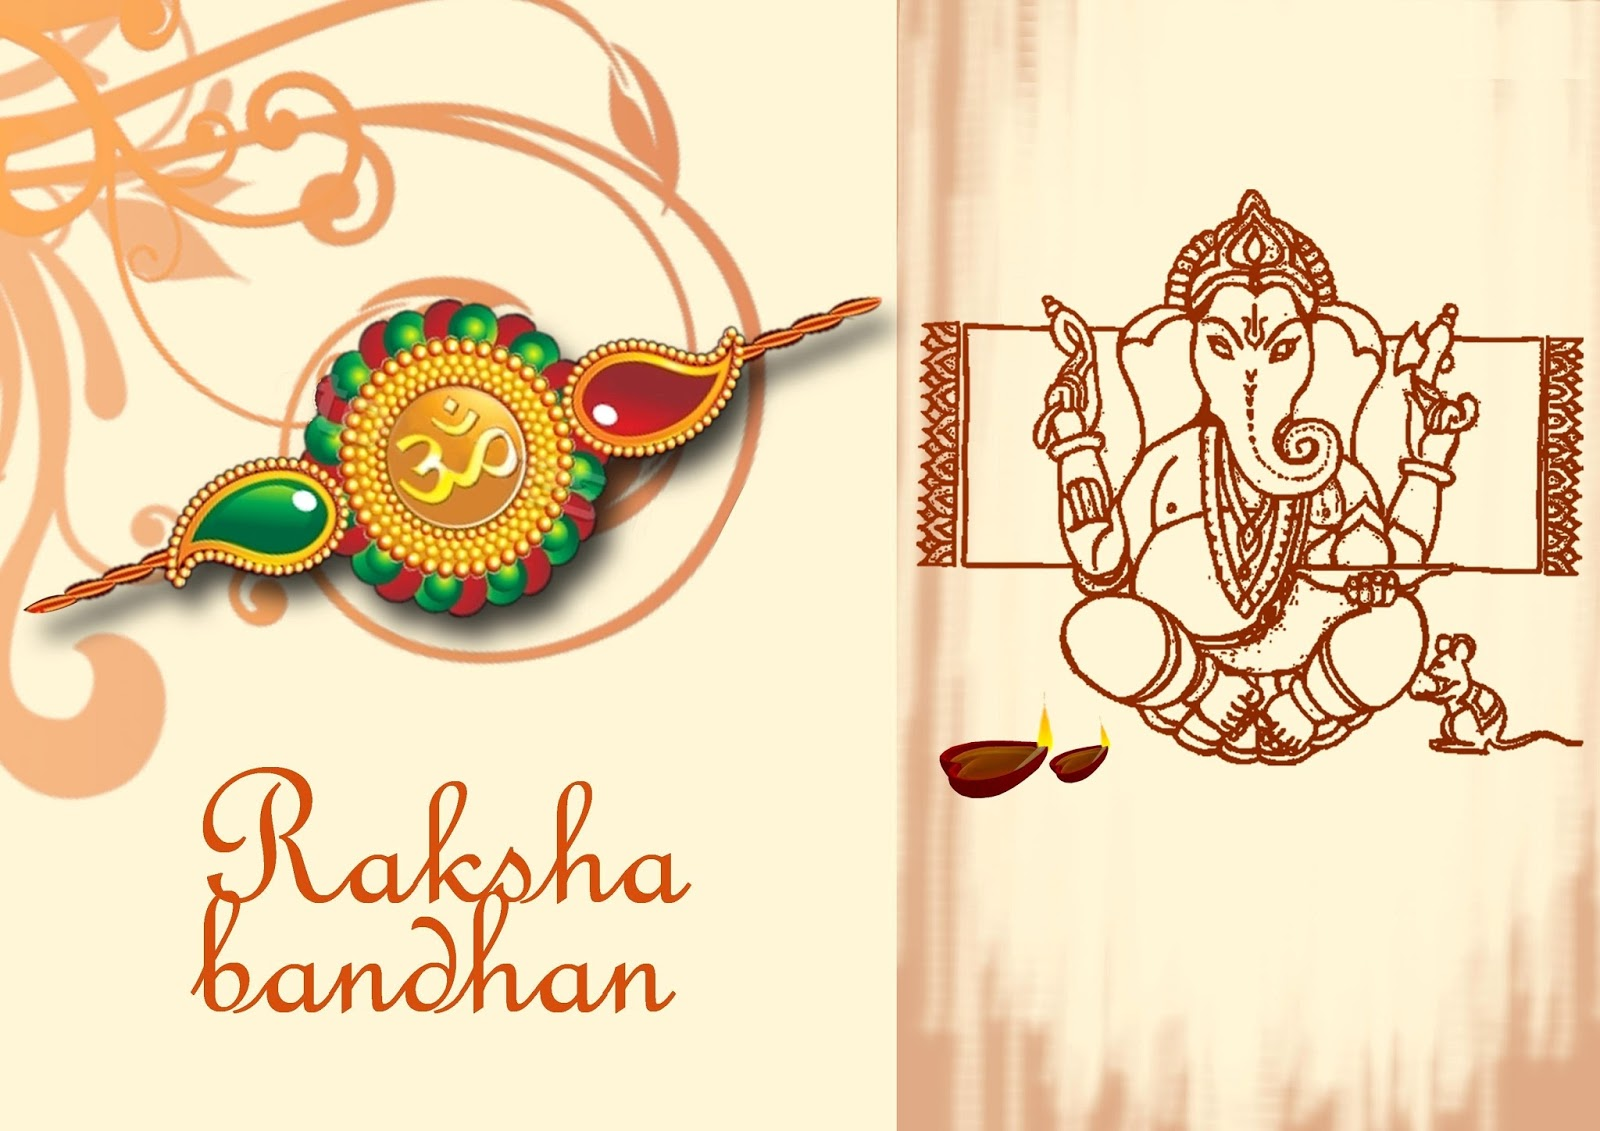 New 2017 raksha bandhan wallpapers rakhi hd images collection raksha bandhan wallpaper kristyandbryce Image collections